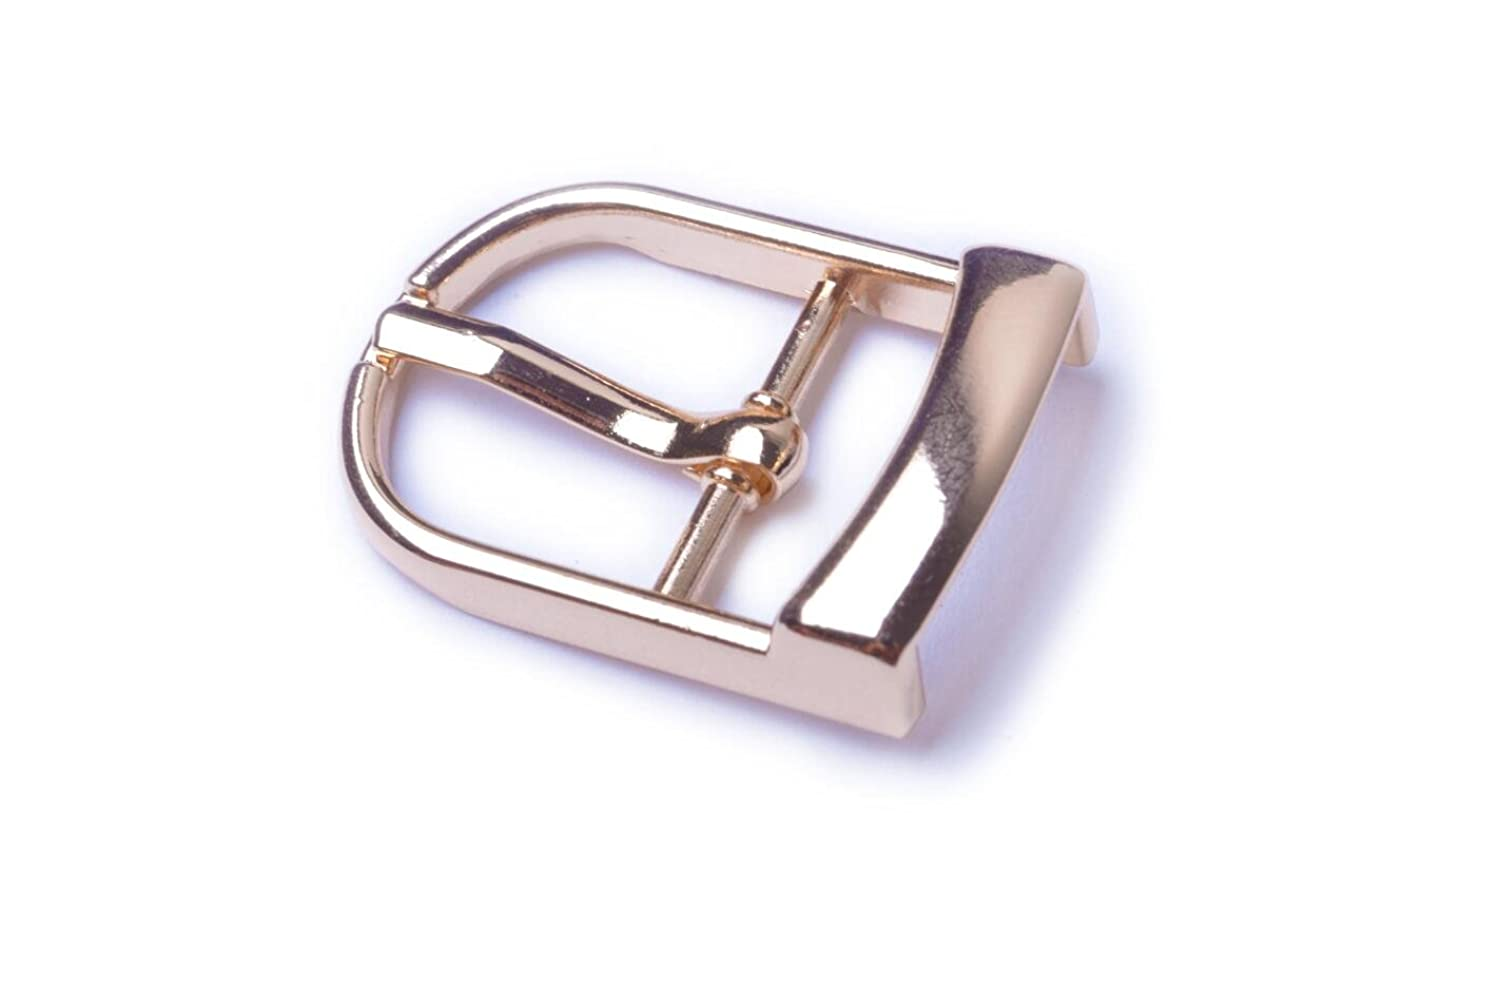 Bobeey 4pcs Purses Center Bar Buckle,Gold Purses Pin buckle Belt buckles (bag making) BBC4 (Gold)